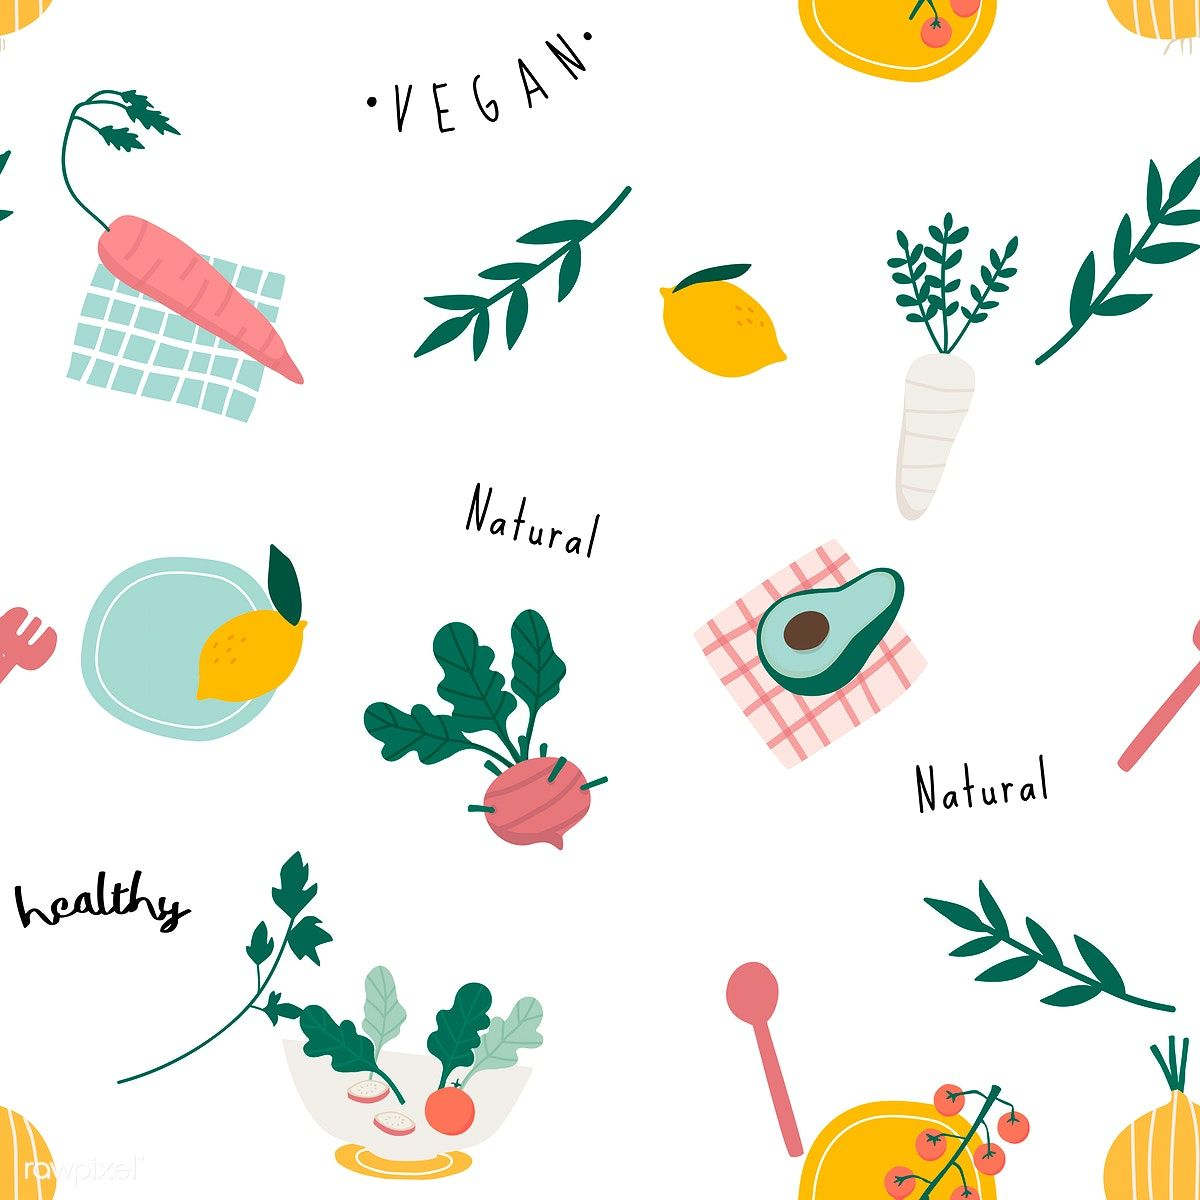 Healthy Vegan Seamless Wallpaper Vector Free Image By Rawpixel Com Filmful In 2020 Vector Free Food Backgrounds Healthy Snacks For Kids